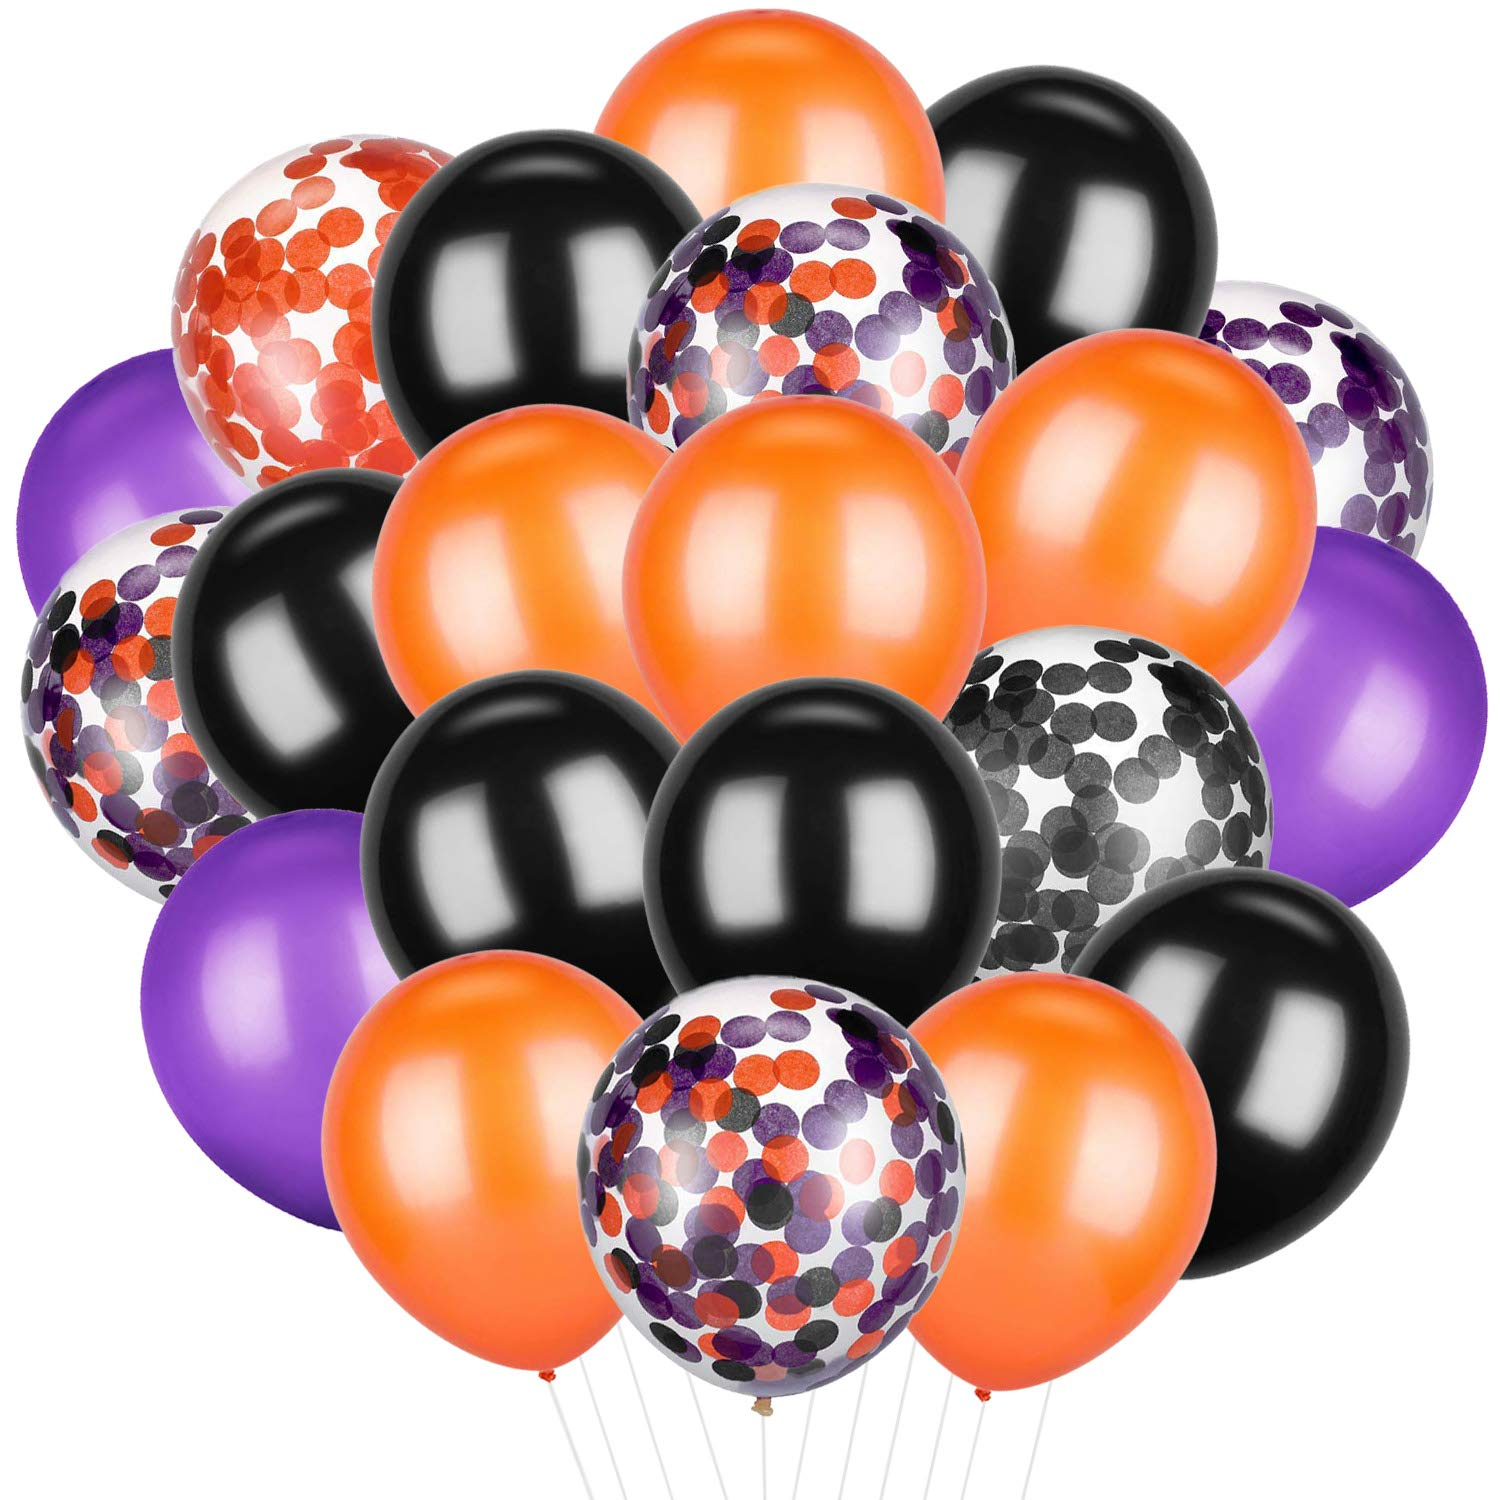 Patelai 50 Pieces Halloween Balloons Orange Black Purple Confetti Balloons Latex Balloons for Party Decoration Supplies, 12 inch VANVENE